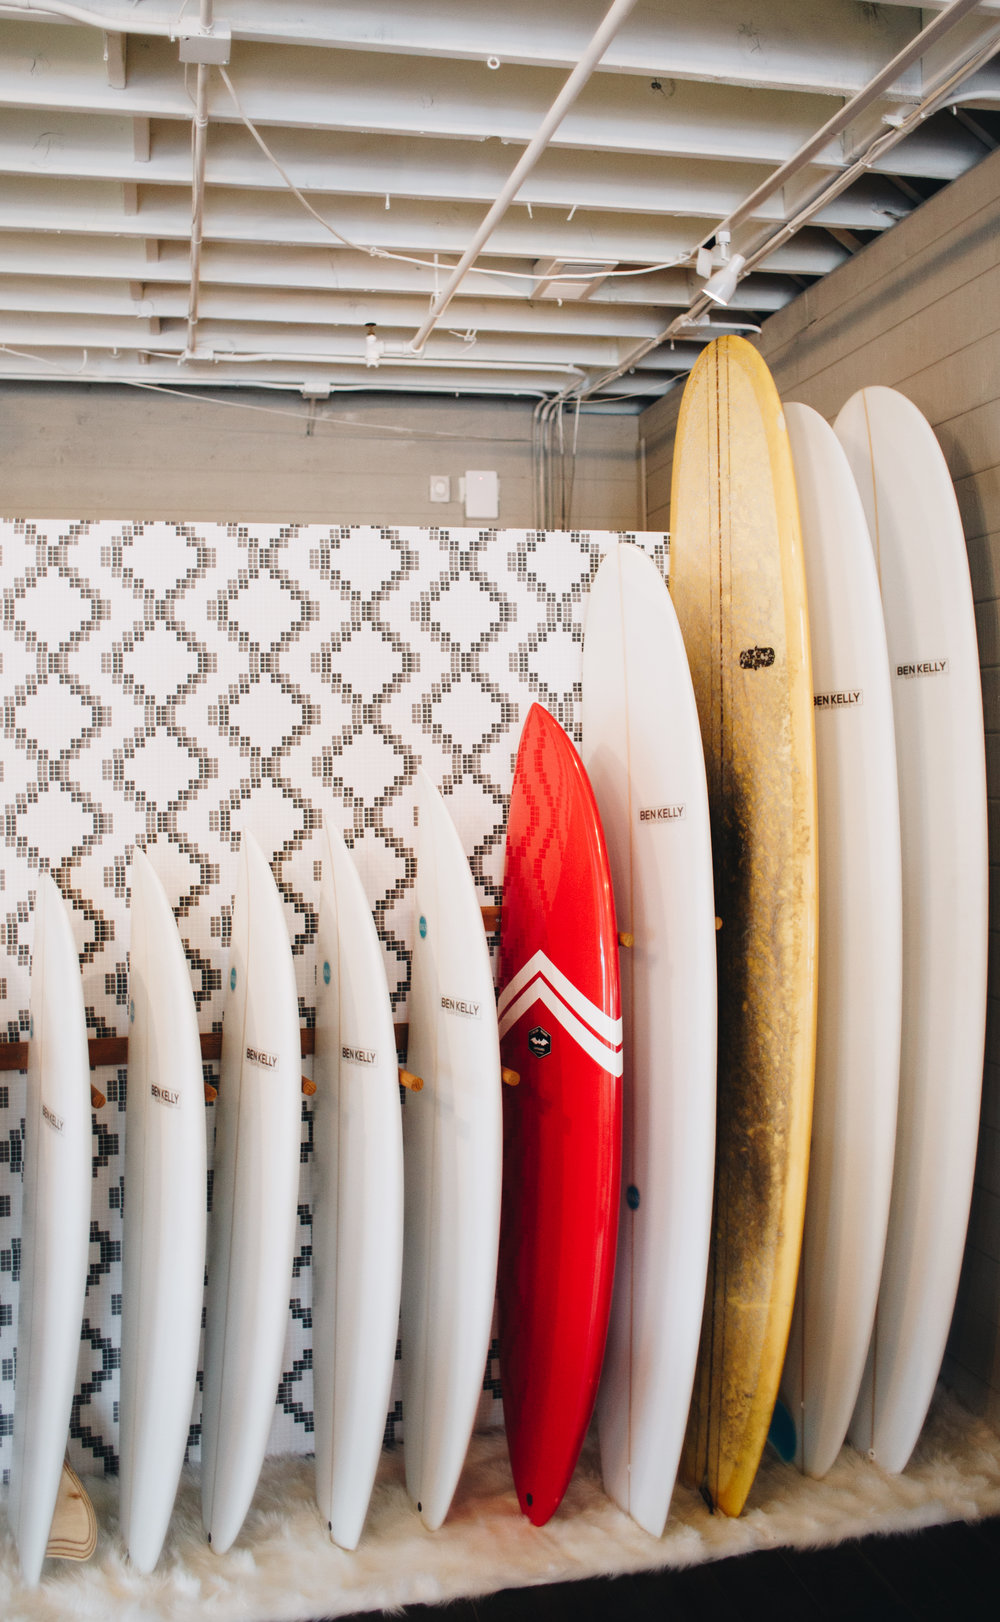 - We've already brought two distinct Santa Cruz board shapers- Ben Kelly and CJ Nelson - into our shop and are displaying their boards for sale! We've put some art on the walls and would love to have tons more from the folks around us. If you're a big time shredder, we'd love to chat about potentially getting you on our surf team. And as a little glimpse into the future, we have some party plans in the beginning stages where we invite everyone to come and hang out.